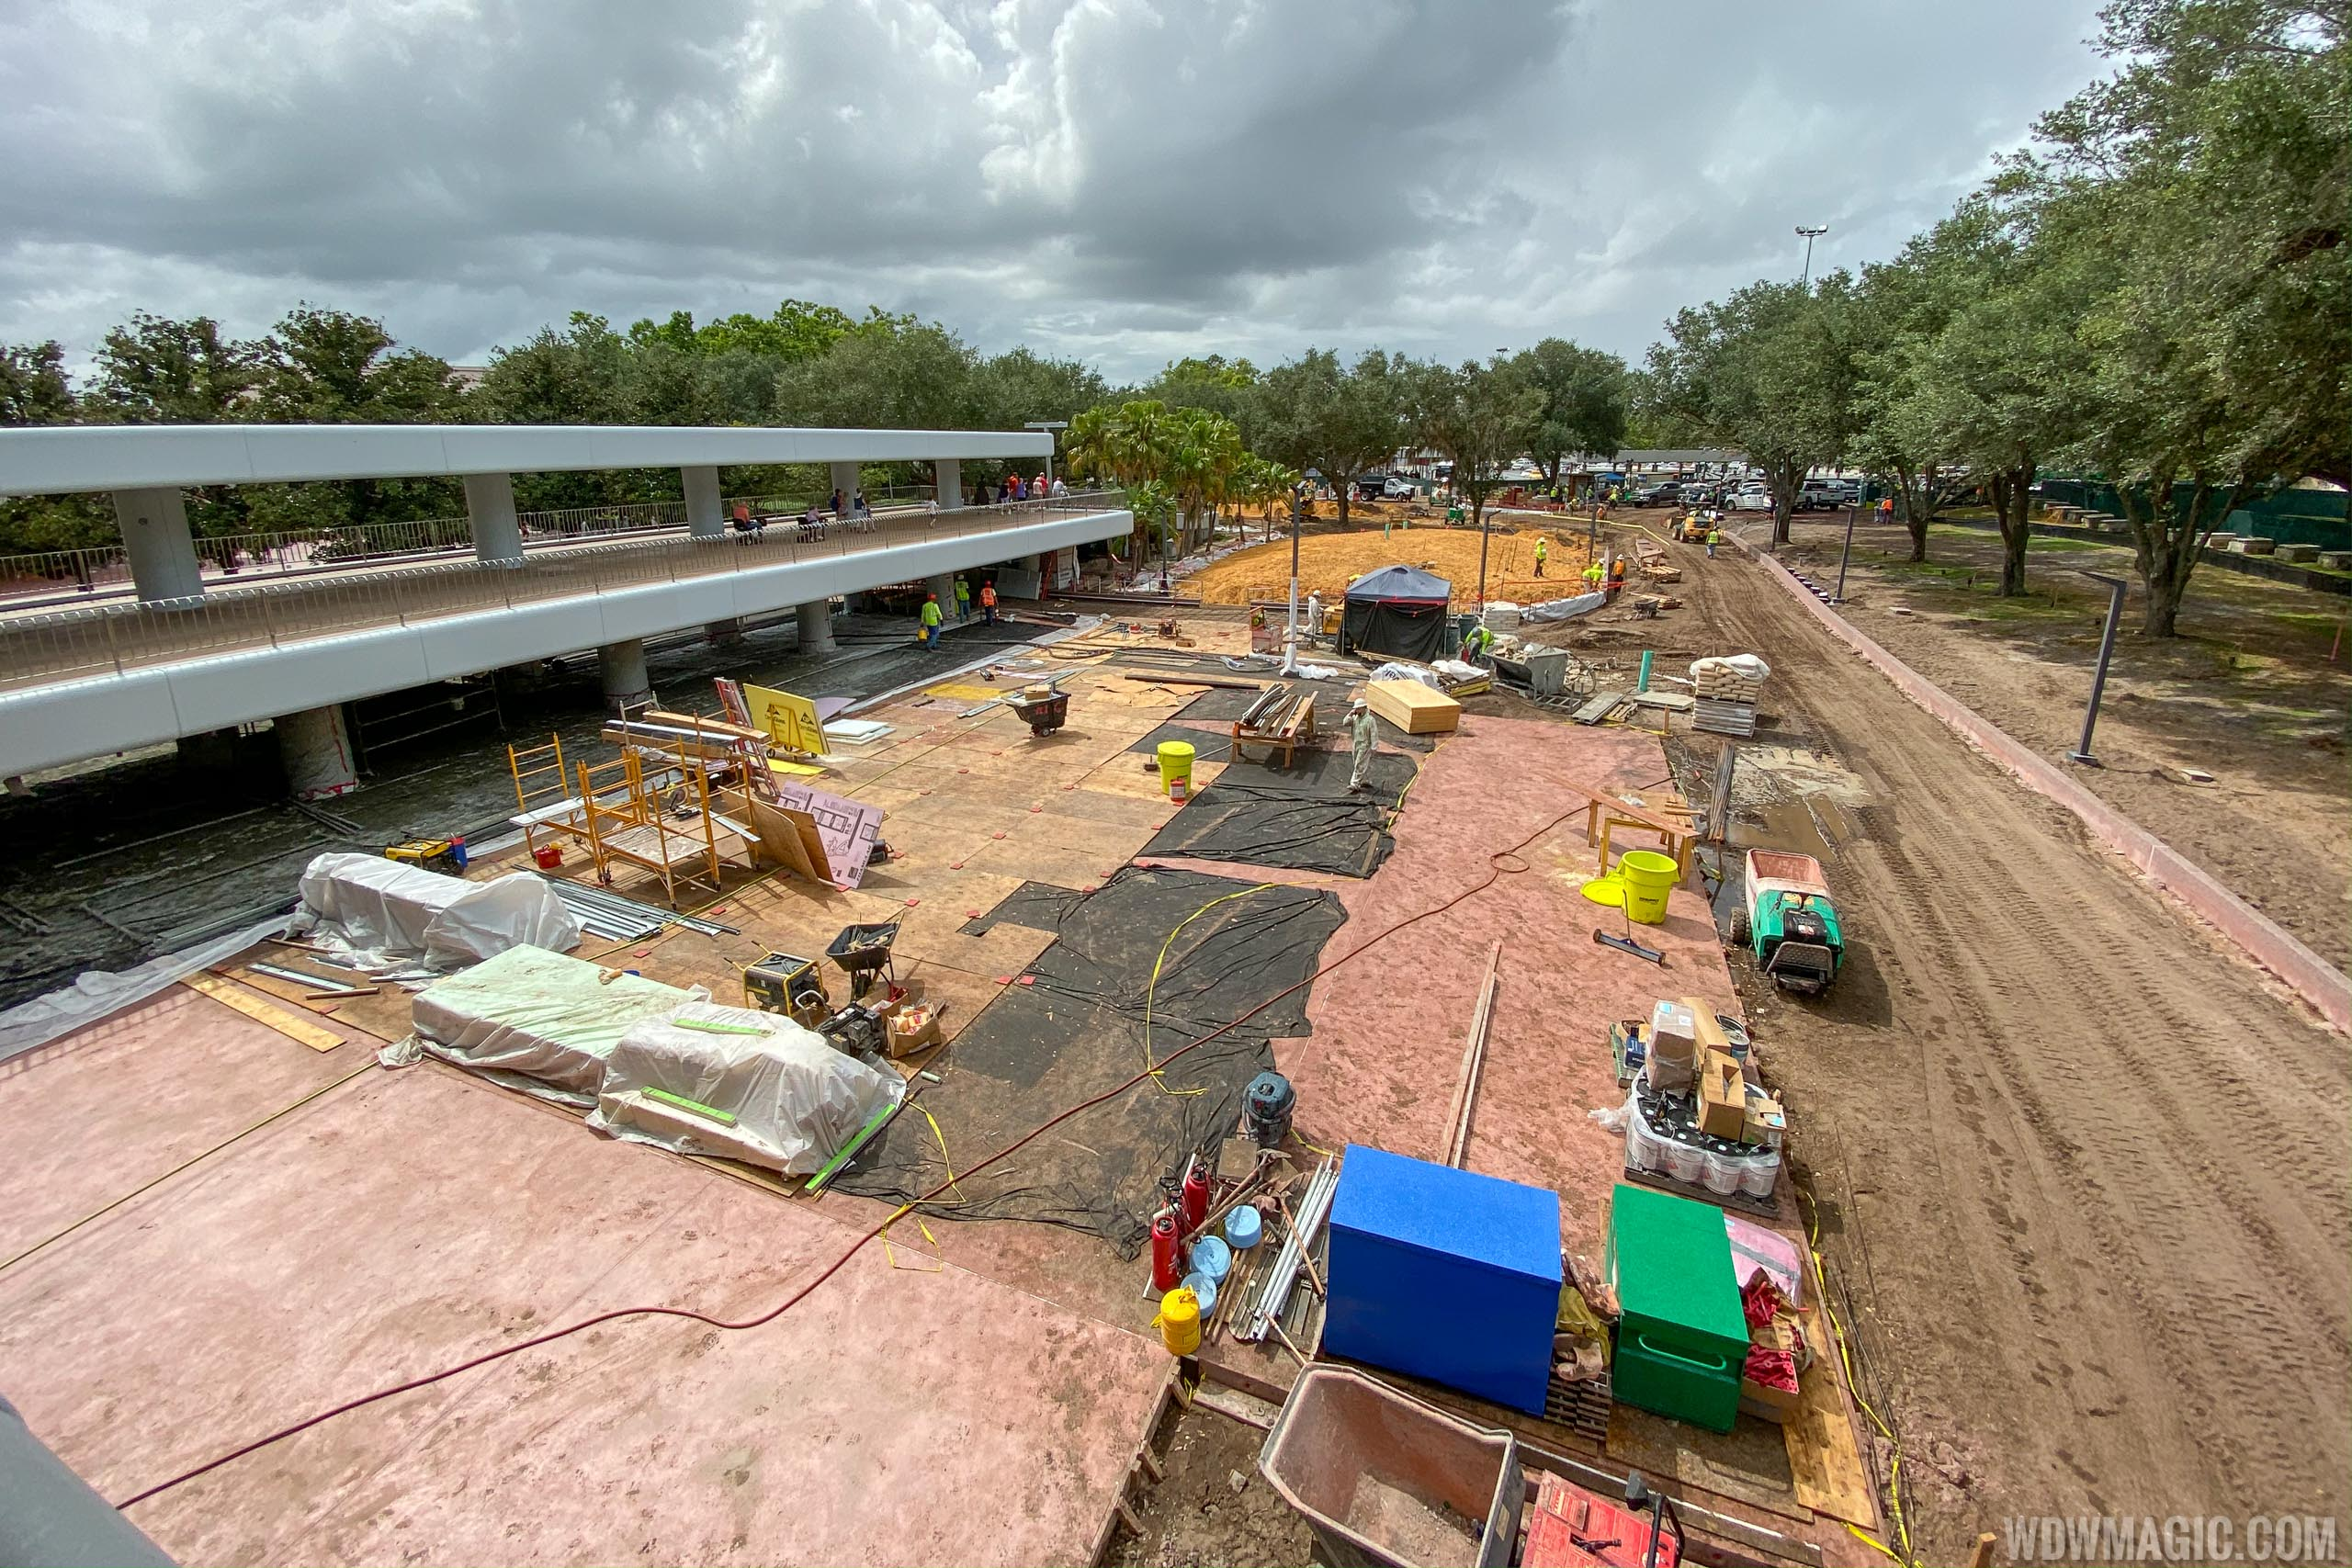 Epcot arrival area October 2019 - New entrance area and bag check